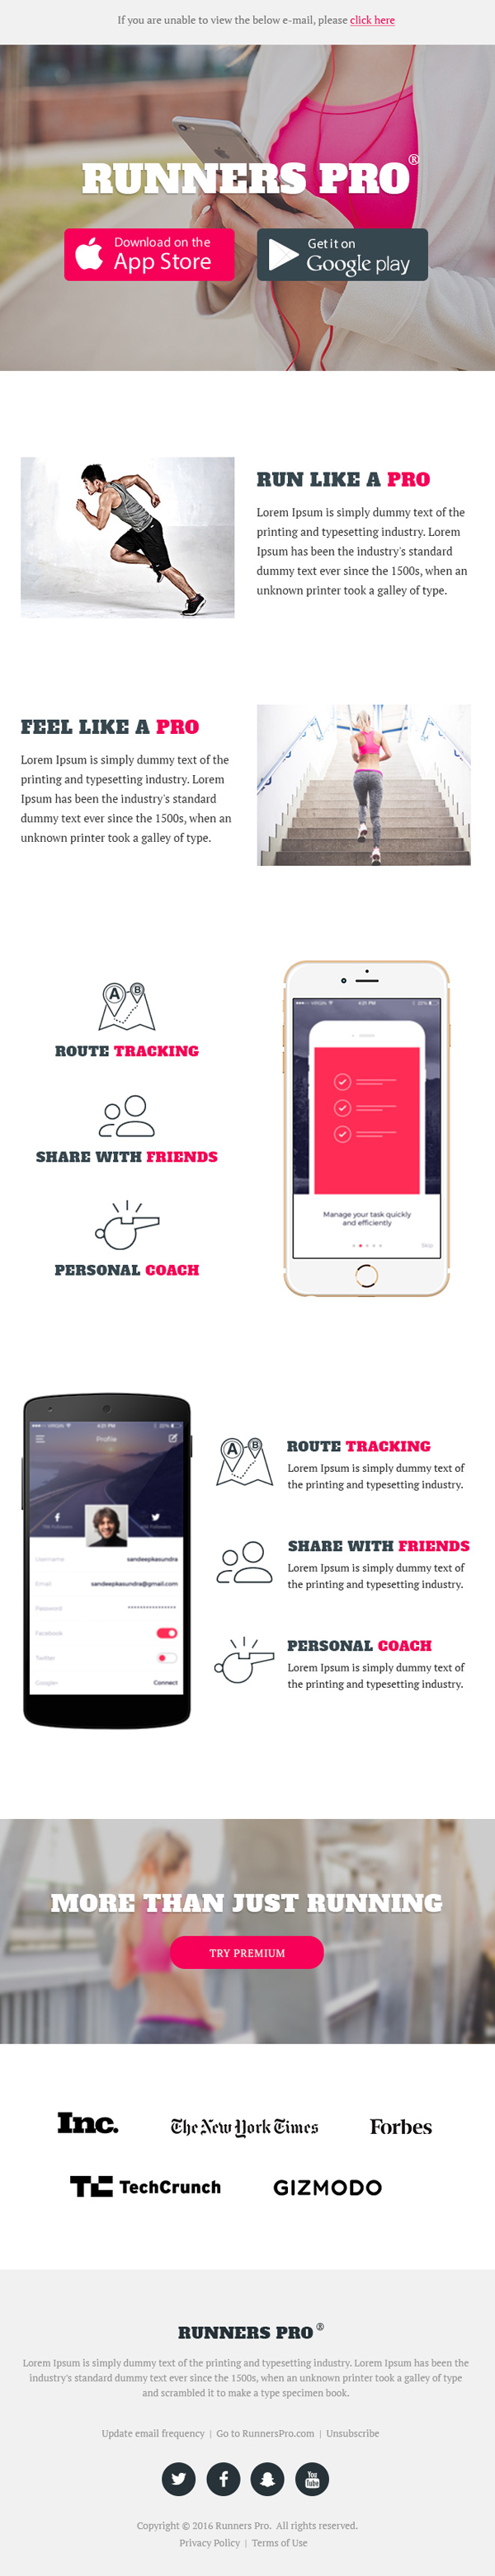 Runners Pro – Free App Download Email Template PSD